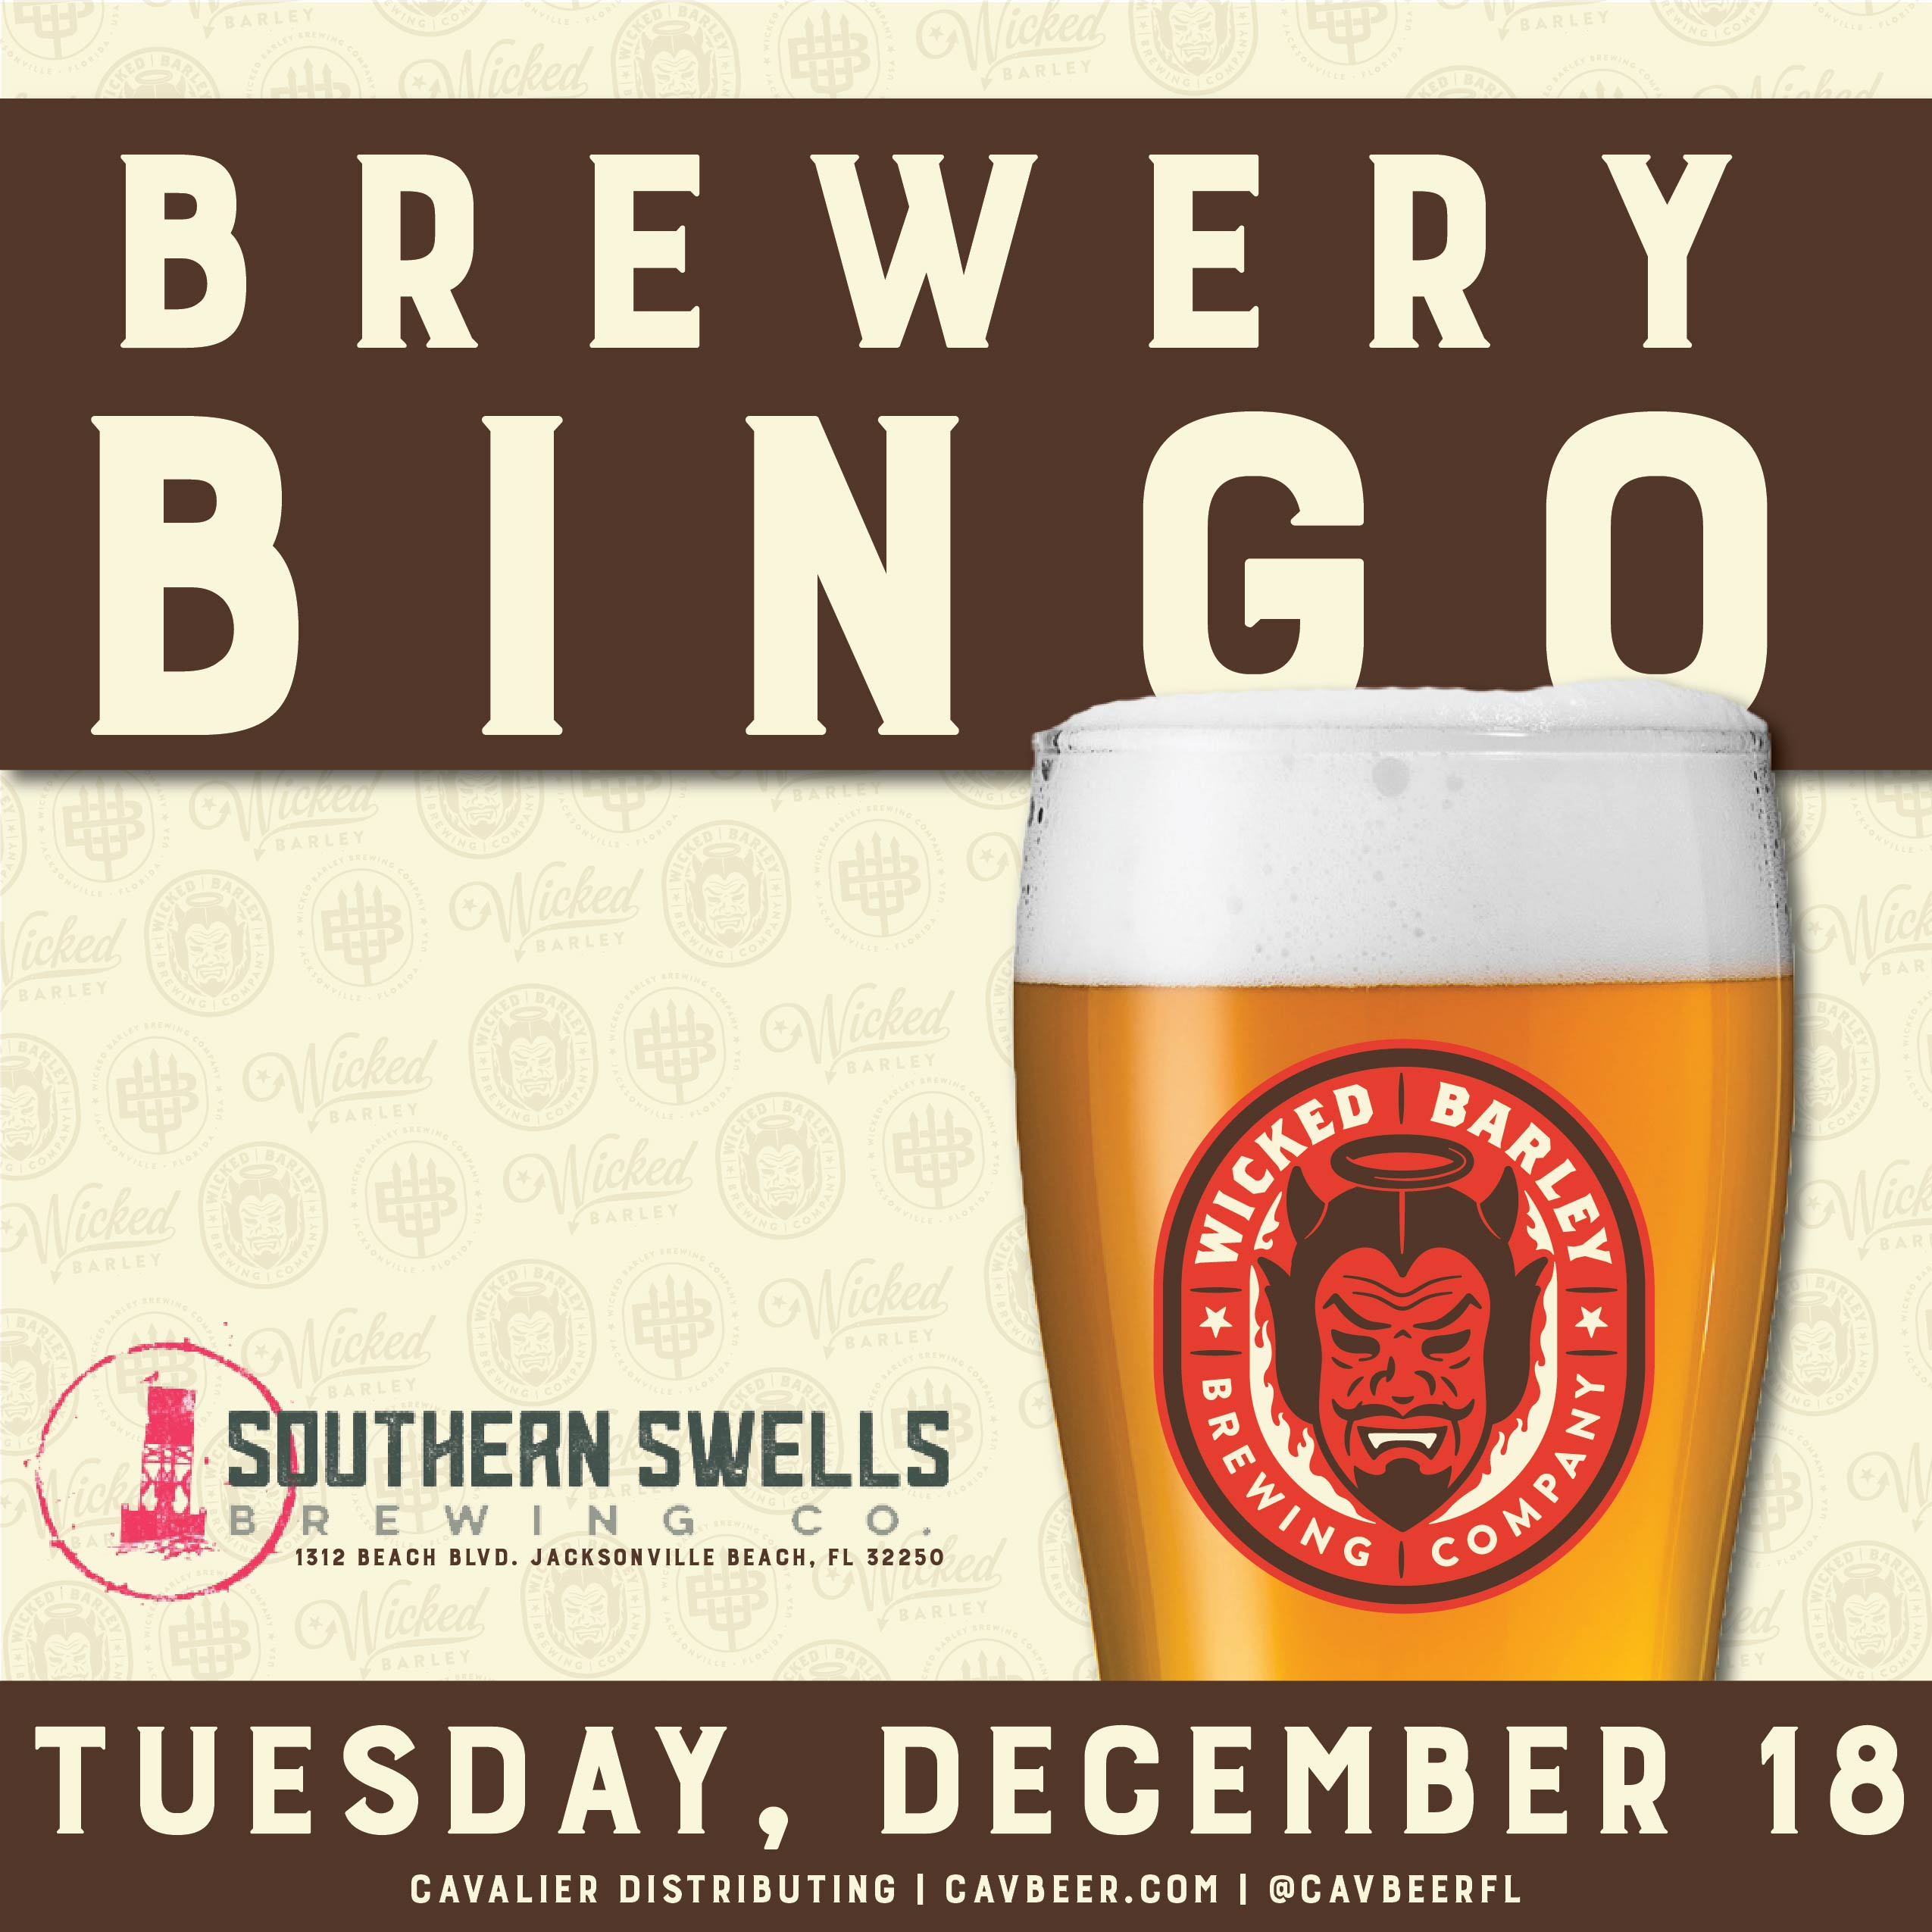 Brewery Bingo with Wicked Barley Brewing Company @ Southern Swells Brewing Co.